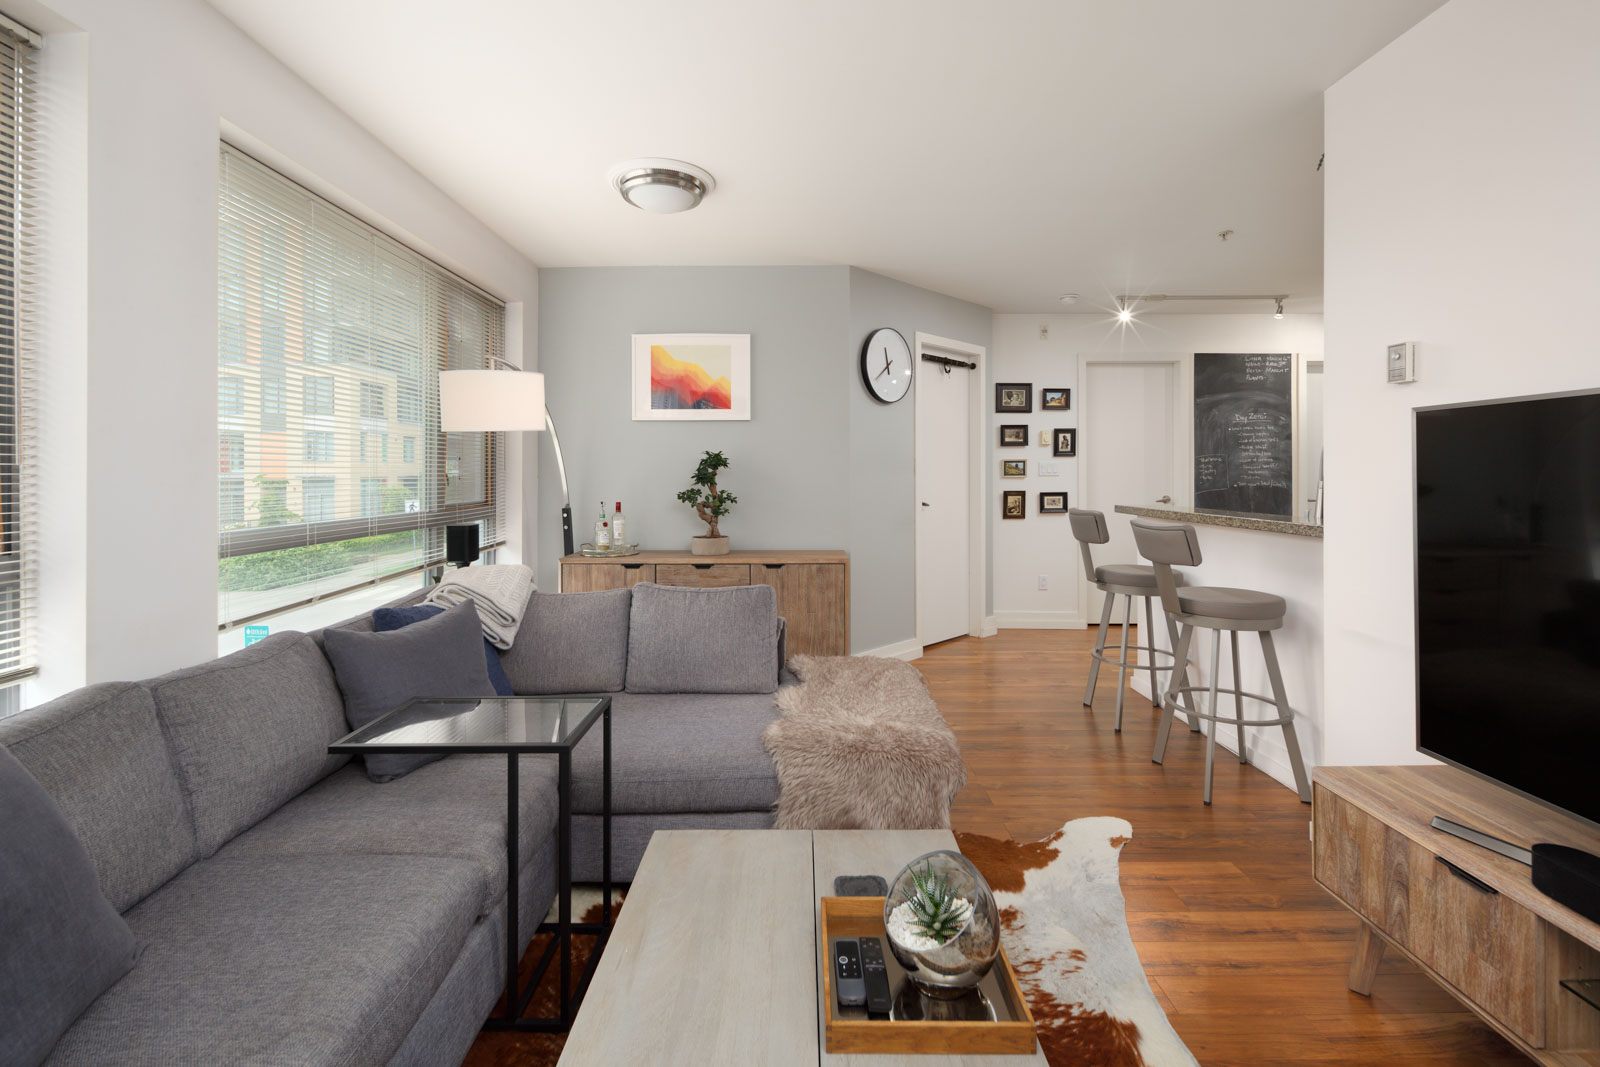 living room with laminated floors in rental condo in the West End neighbourhood of Vancouver